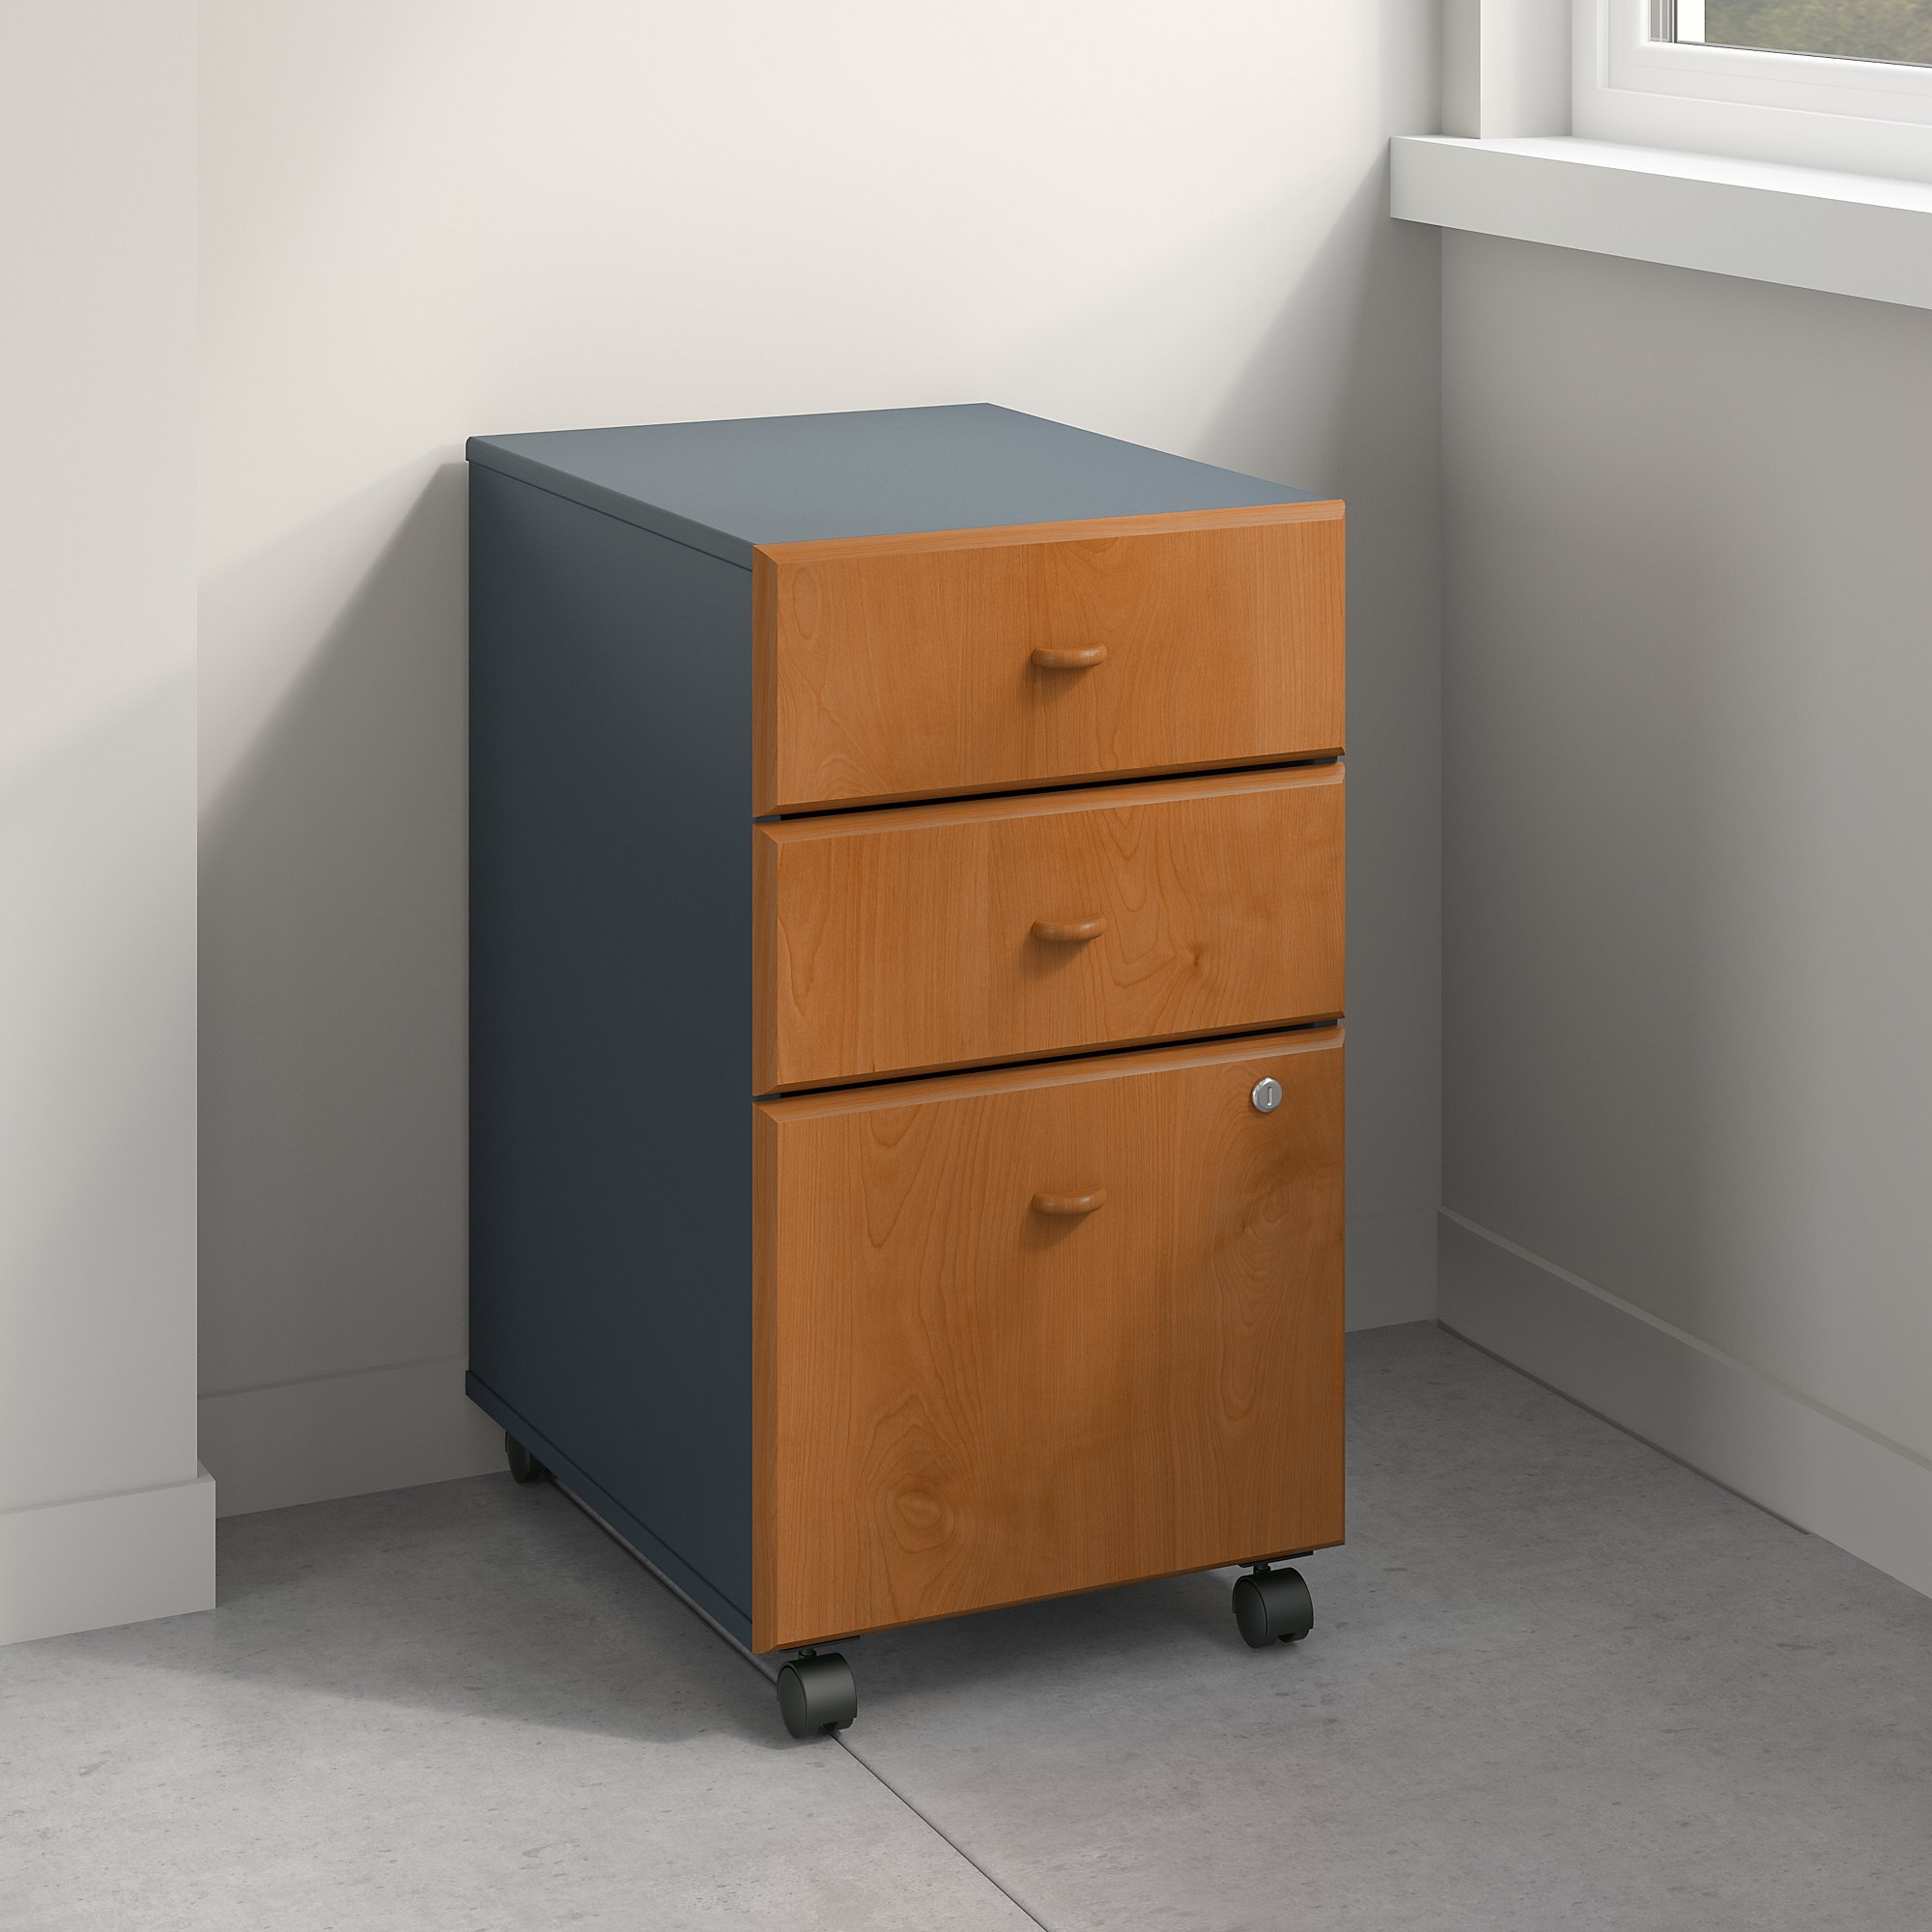 Bush Business Furniture WC57453PSU Series A 3 Drawer Mobile File Cabinet, Natural Cherry/Slate by Bush Business Furniture